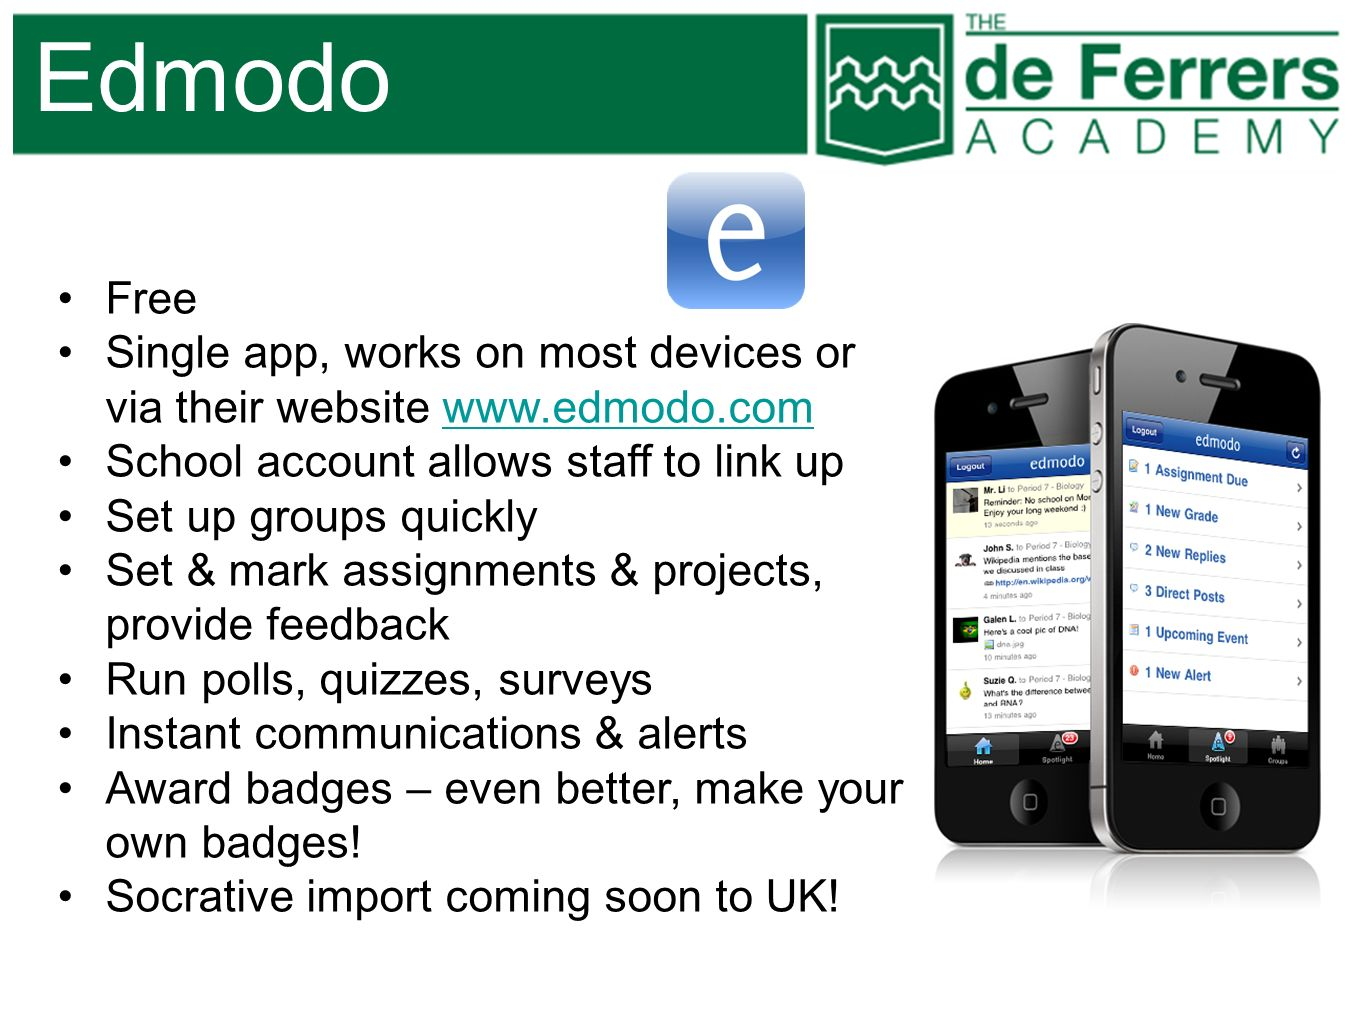 EdmodoFree. Single app, works on most devices or via their website www.edmodo.com. School account allows staff to link up.